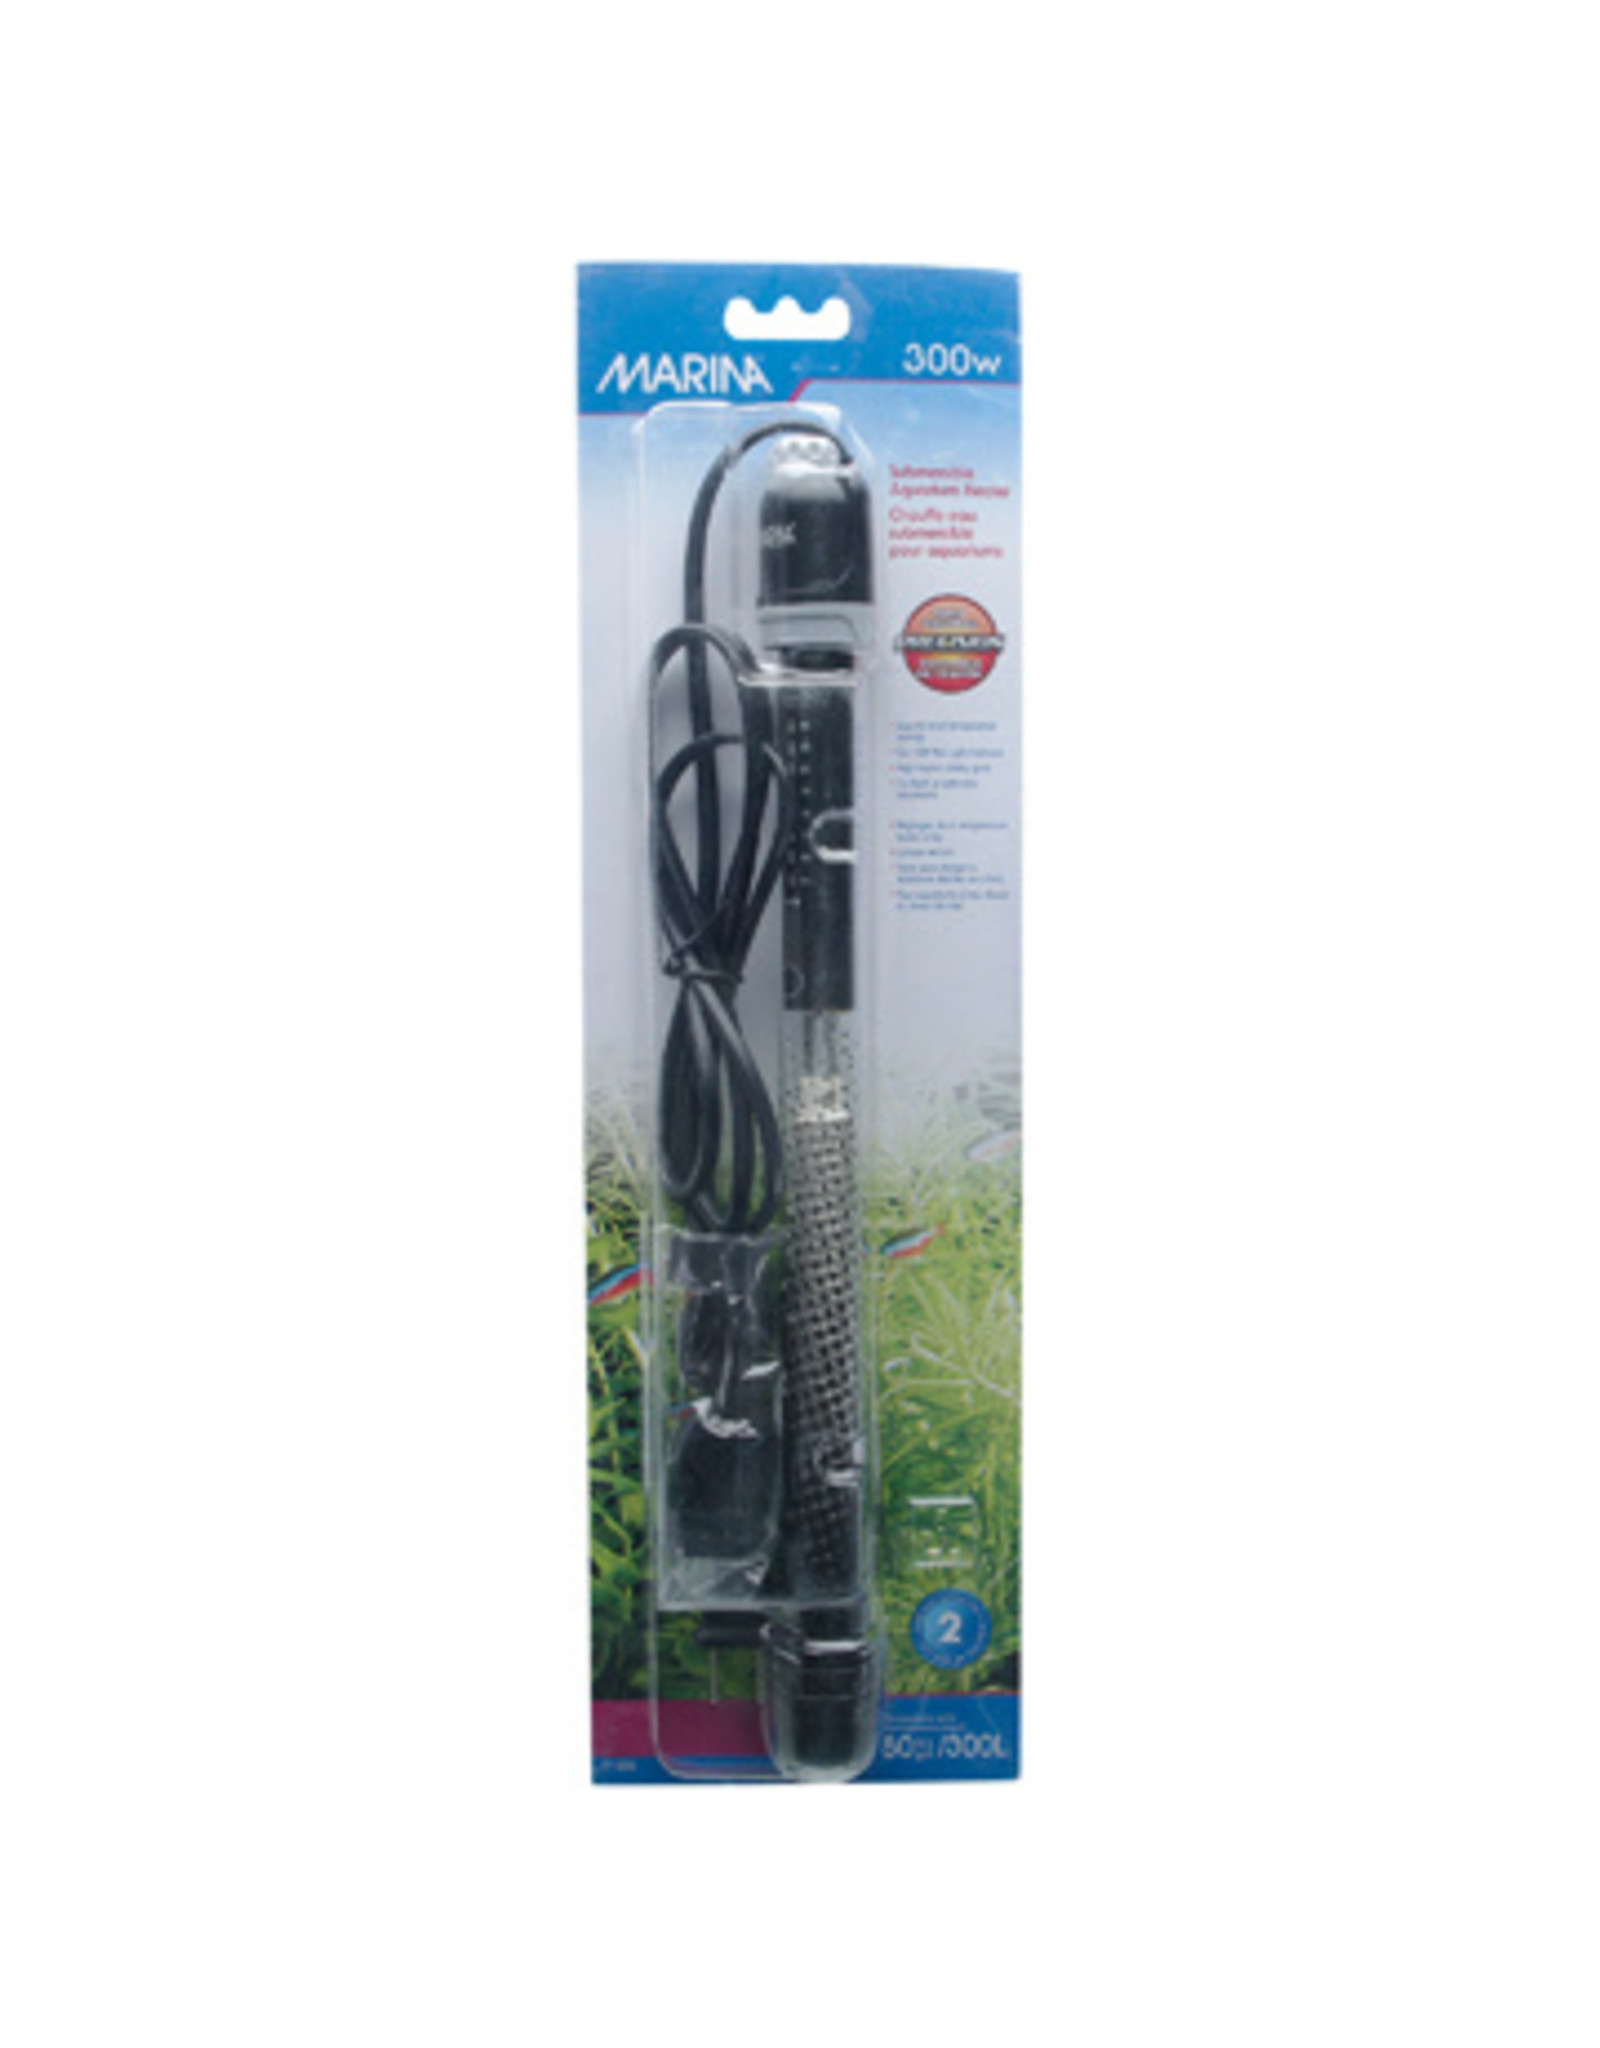 Marina MARINA Submersible Pre-Set Heater